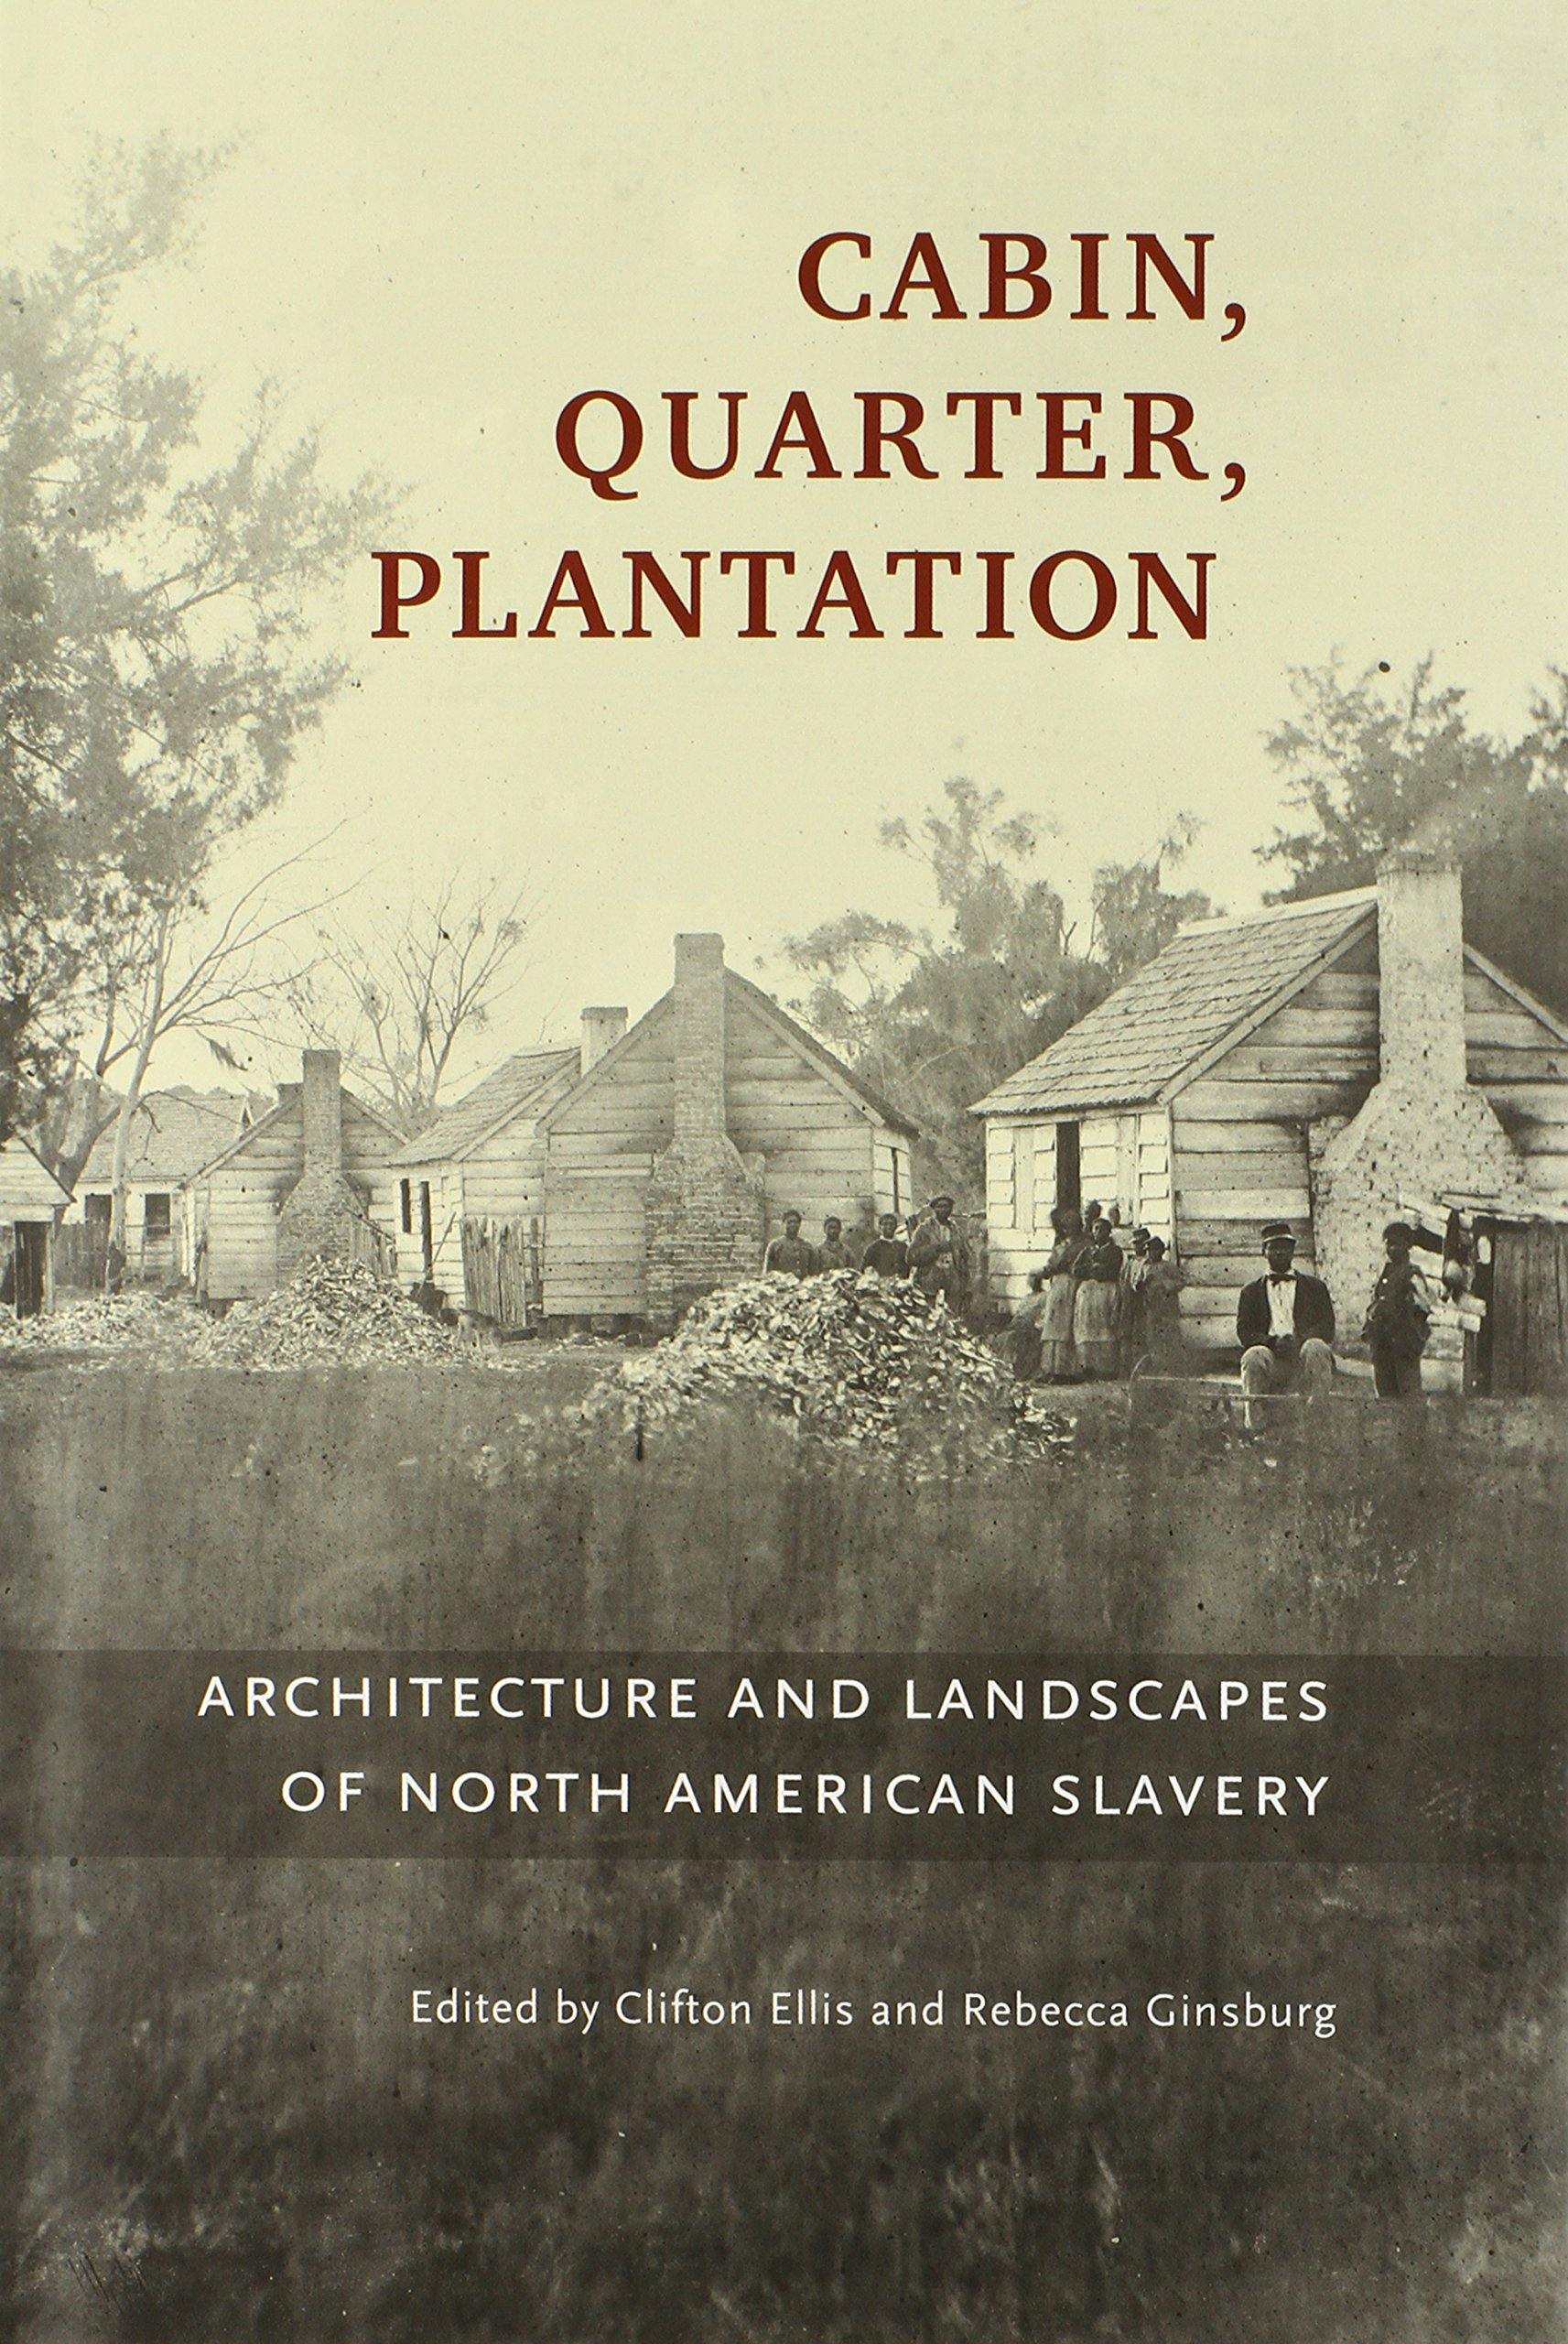 Download Cabin, Quarter, Plantation: Architecture and Landscapes of North American Slavery pdf